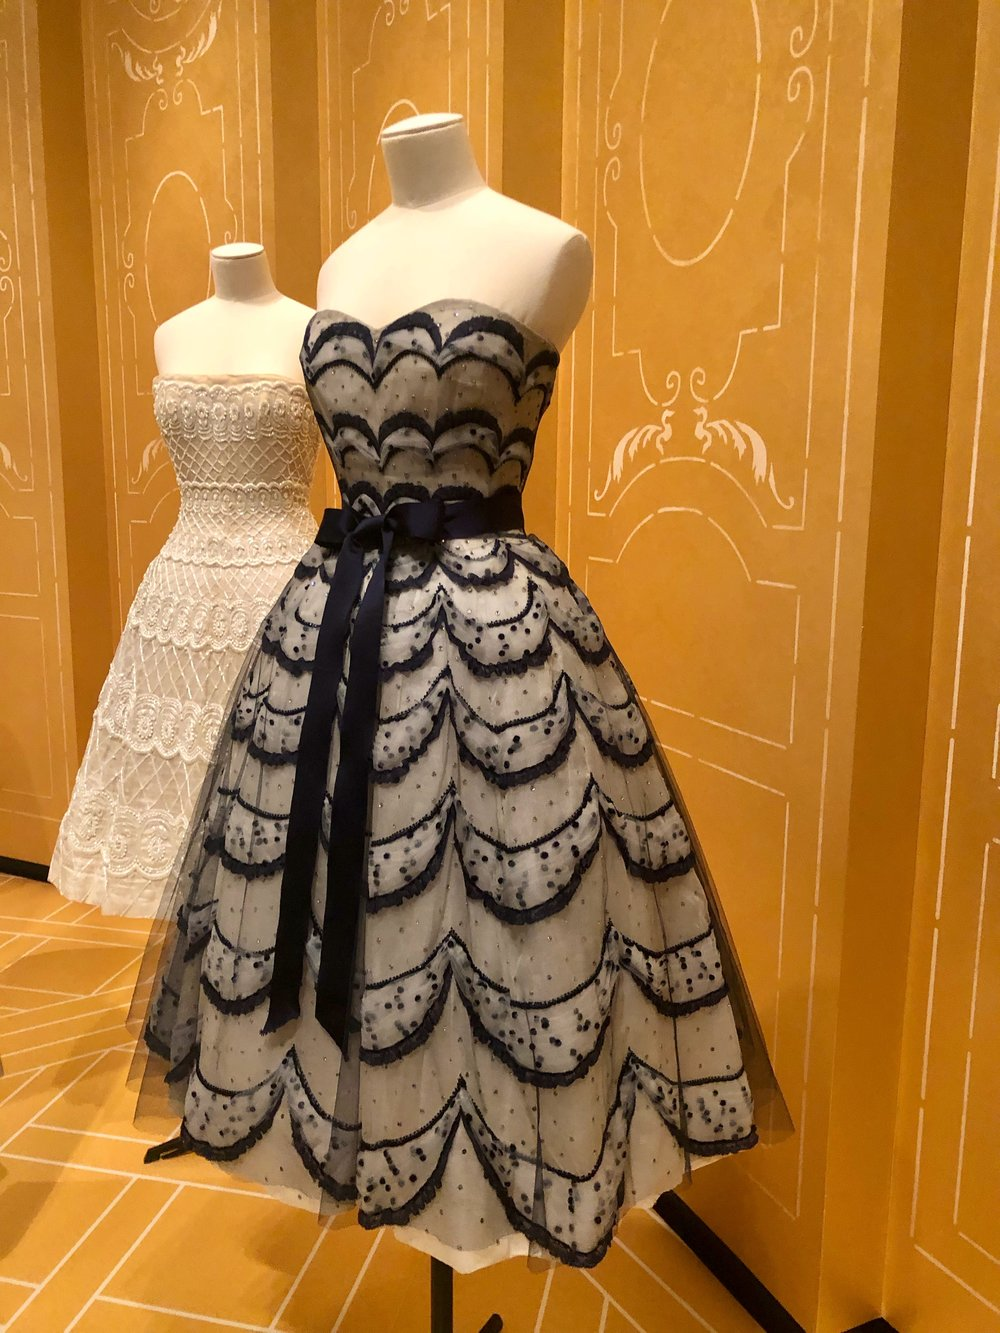 """Dior: From Paris to the World"" will be at the Denver Art Museum until March 3. I wrote a story about the h ouse's history and legacy  for The Denver Post."